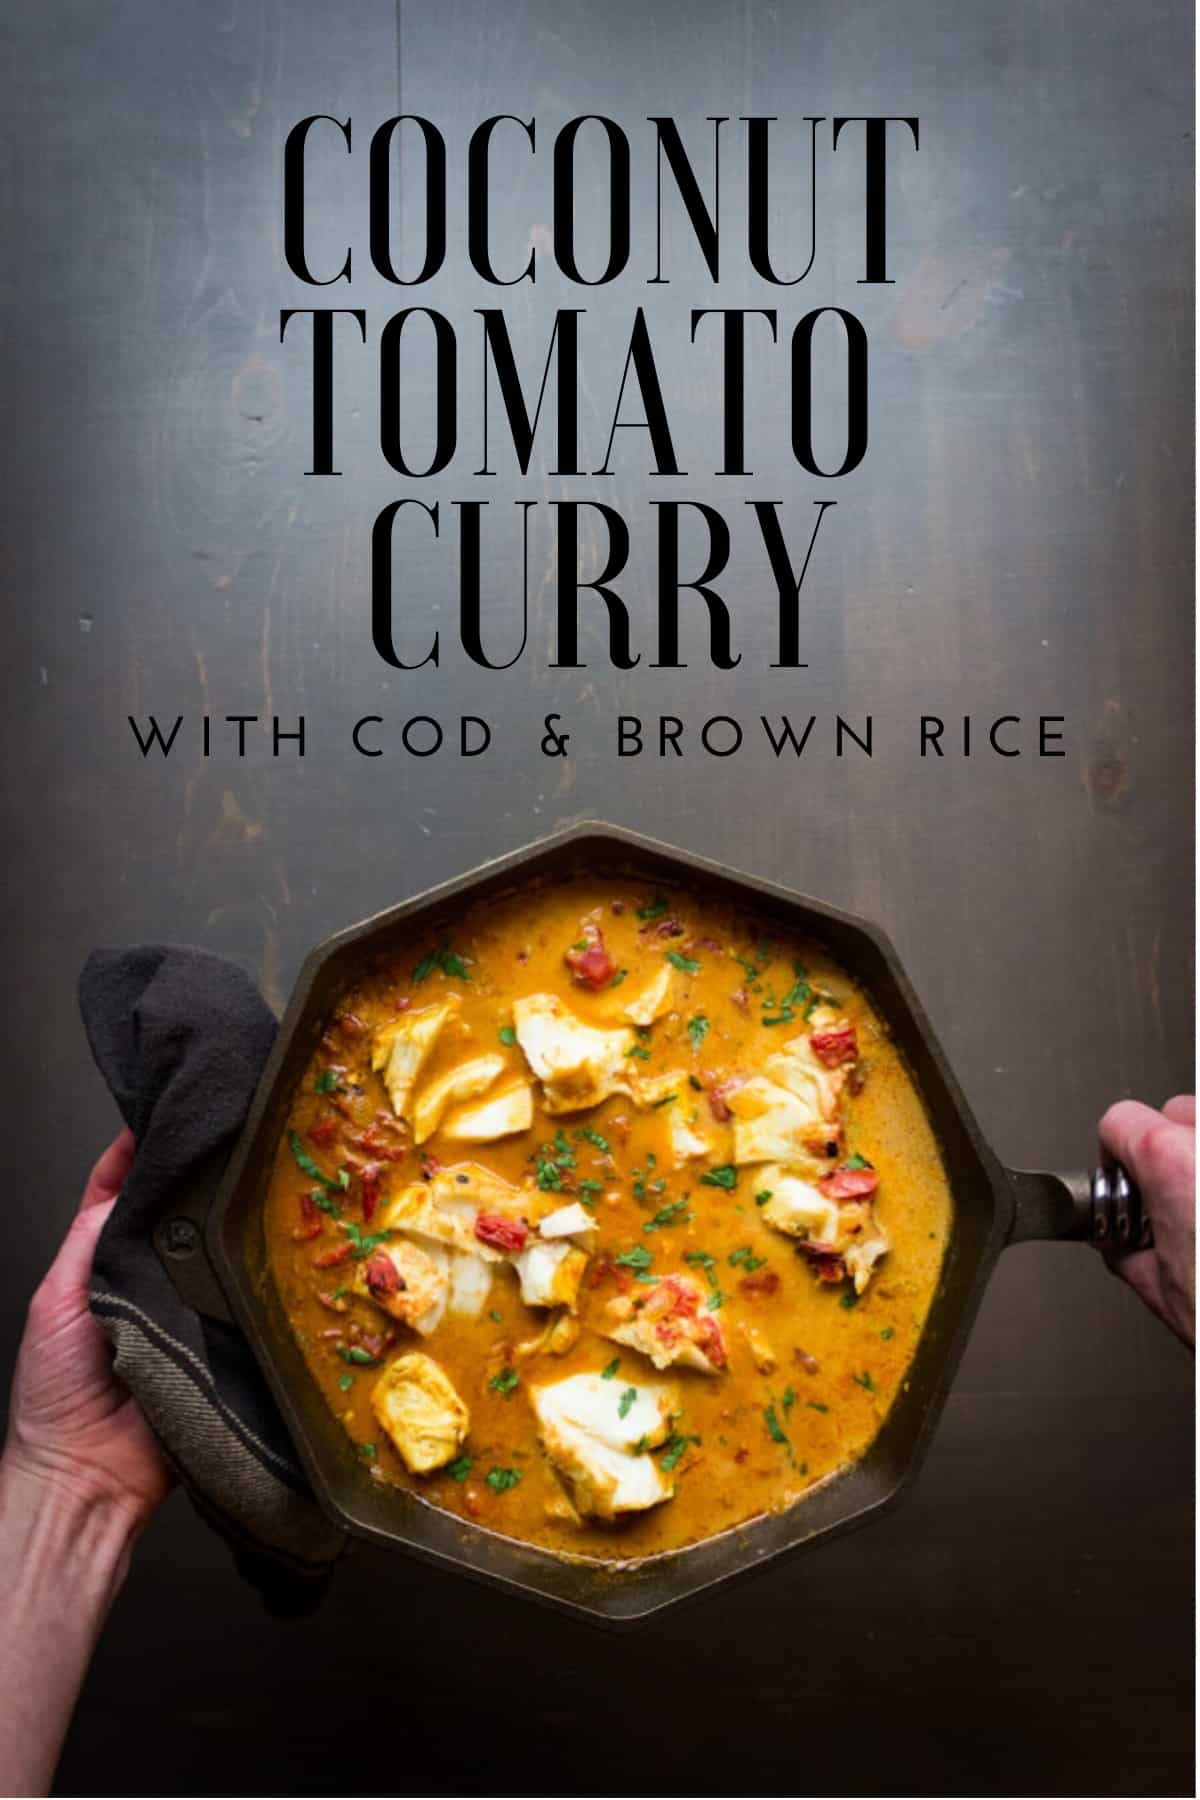 Two hands holding a cast iron skillet with coconut tomato curry and cod.